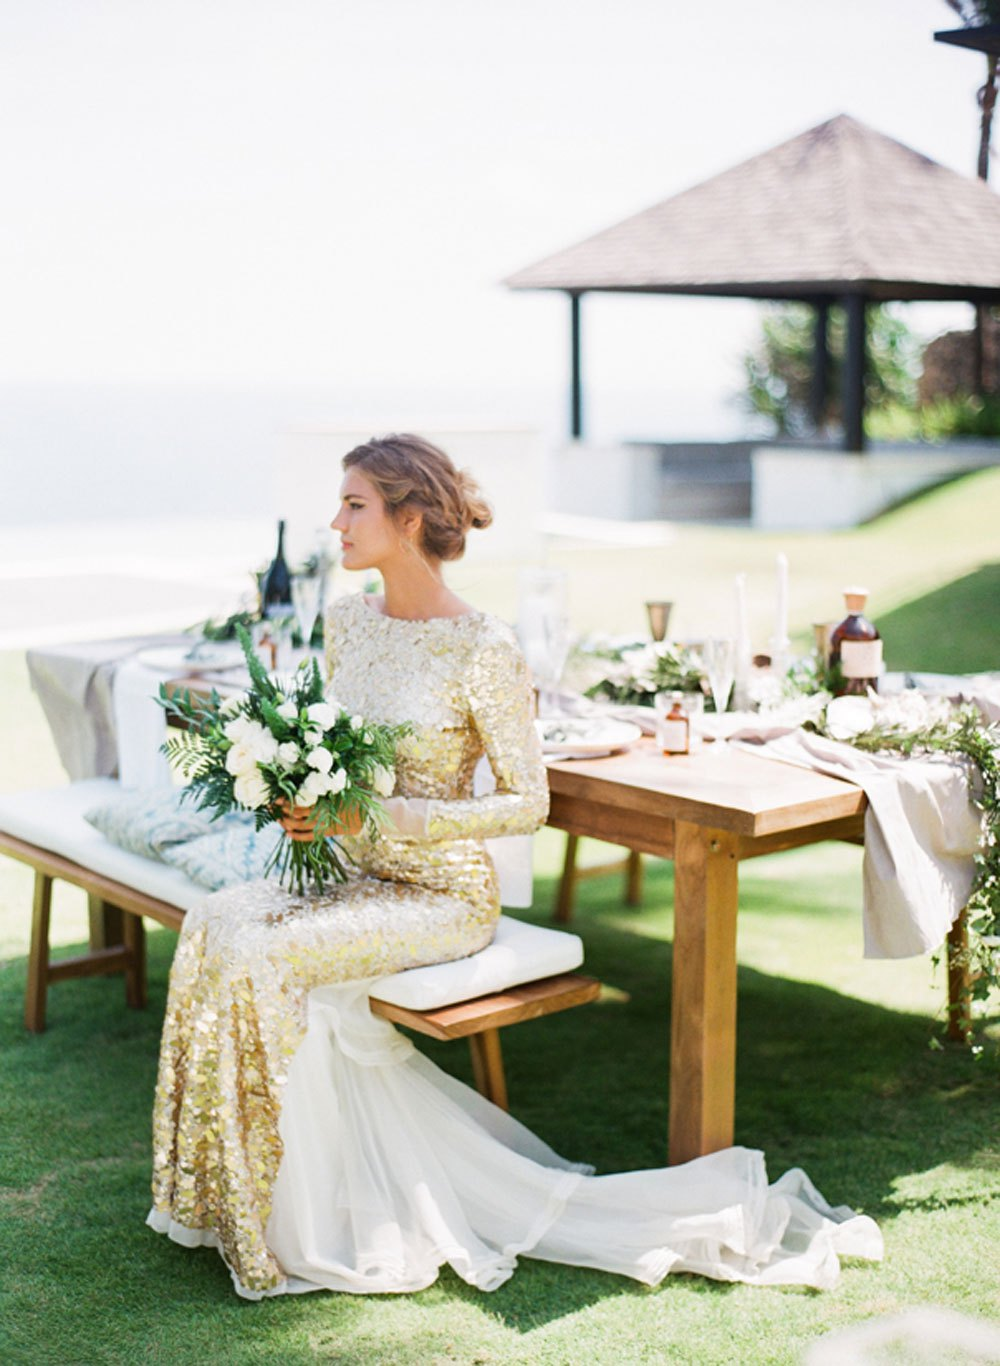 sheath wedding dress in gold tones